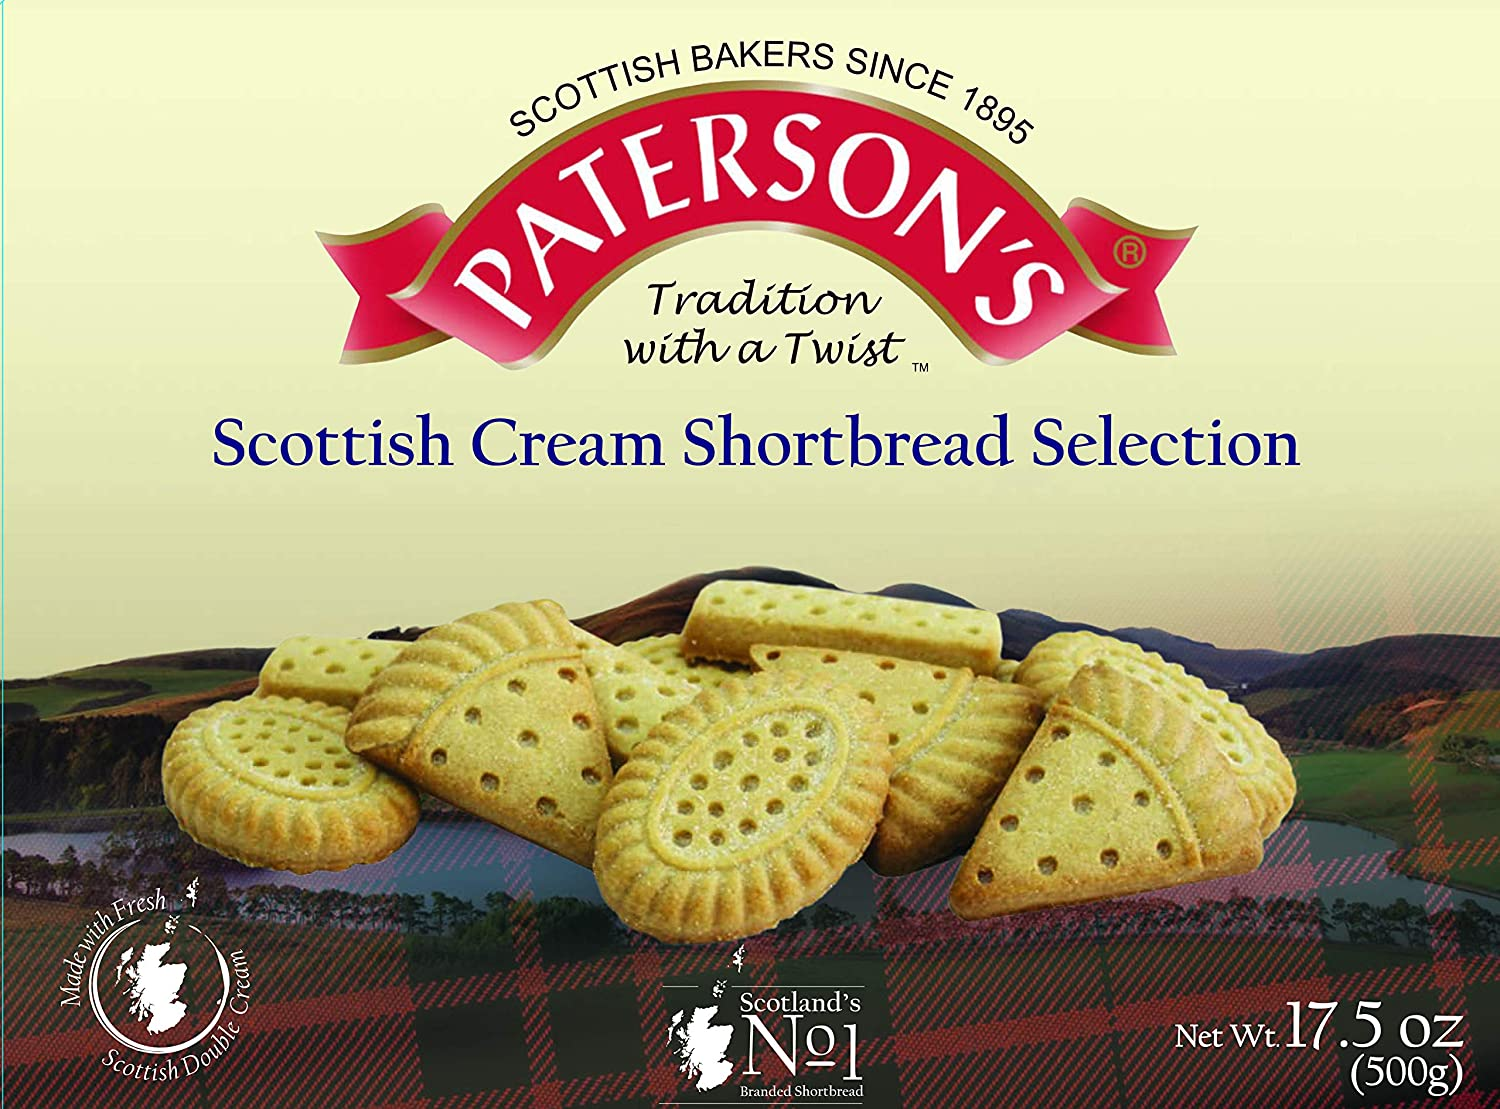 Paterson's Rich Scottish Cream Assortment 17.5 oz, Scottish Shortbread, Shortbread Cookies From Scotland, Scottish Shortbread Cookies, Butter Cookies, Christmas Tea Cookies, Scotch Biscuit (Pack of 1)